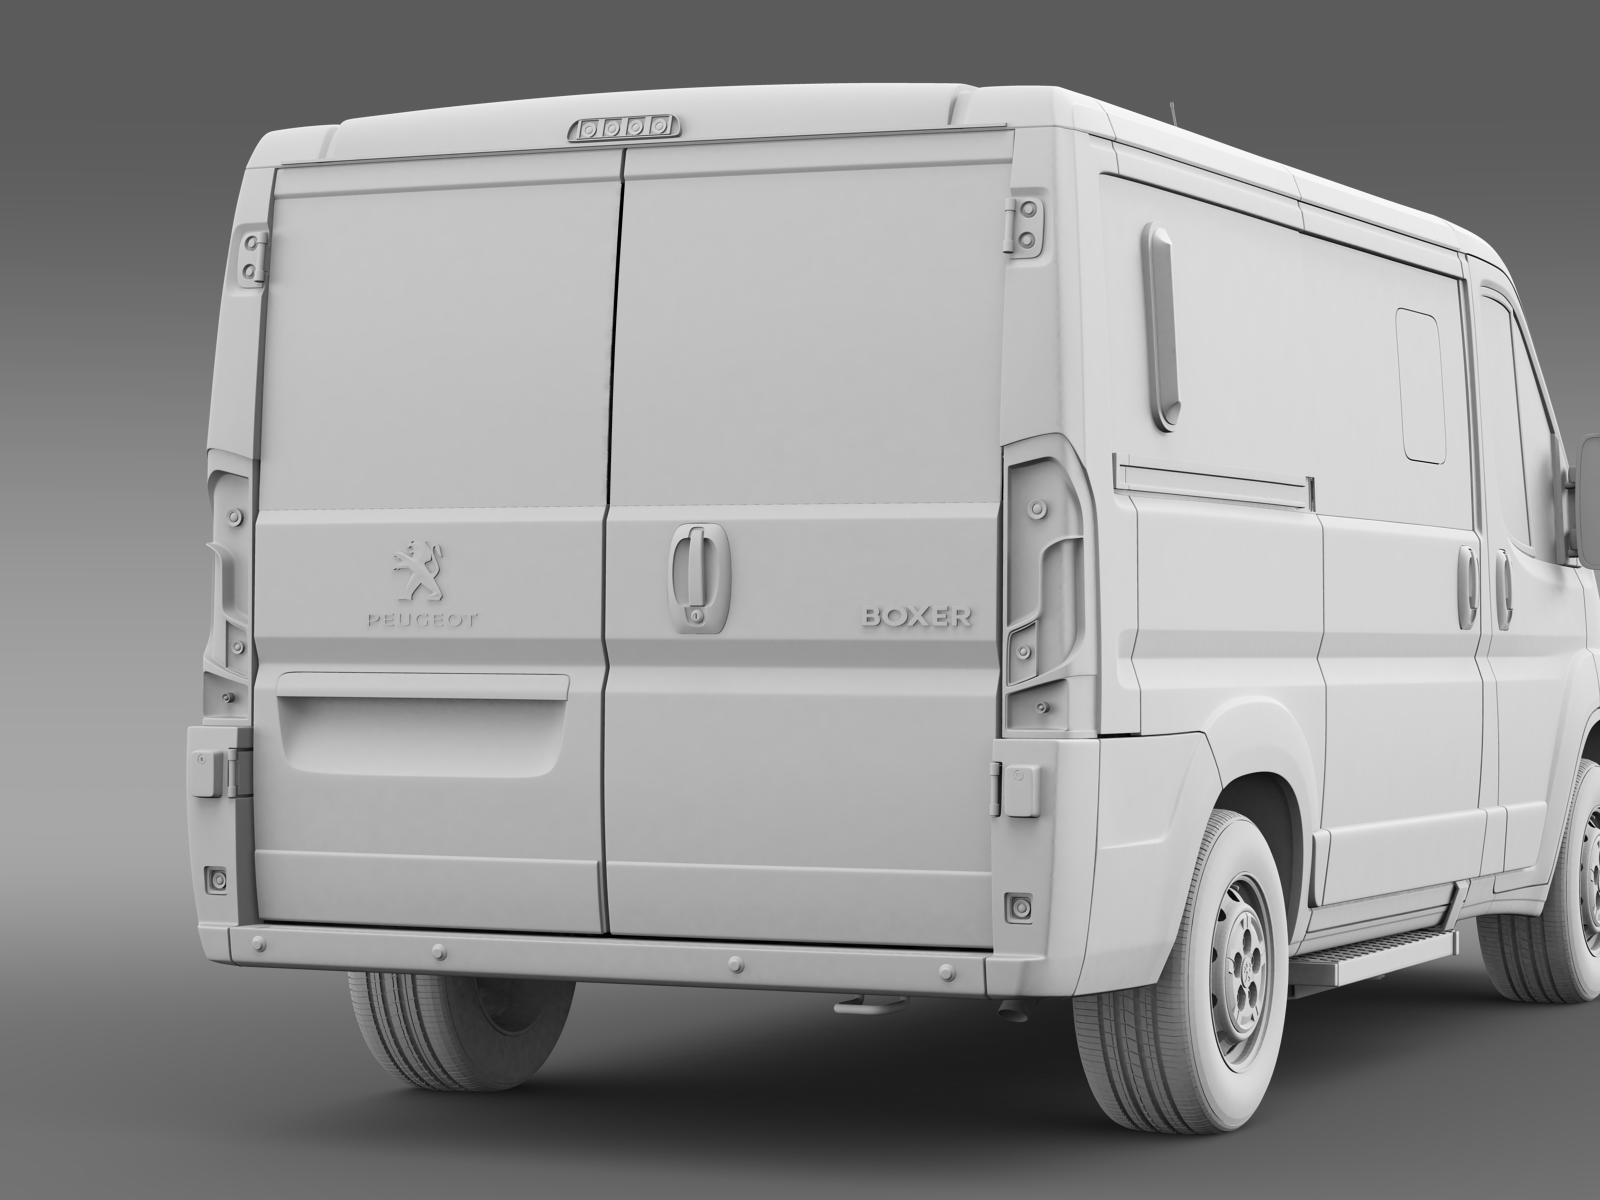 peugeot boxer l1h1 2014 3d model buy peugeot boxer l1h1 2014 3d model flatpyramid. Black Bedroom Furniture Sets. Home Design Ideas